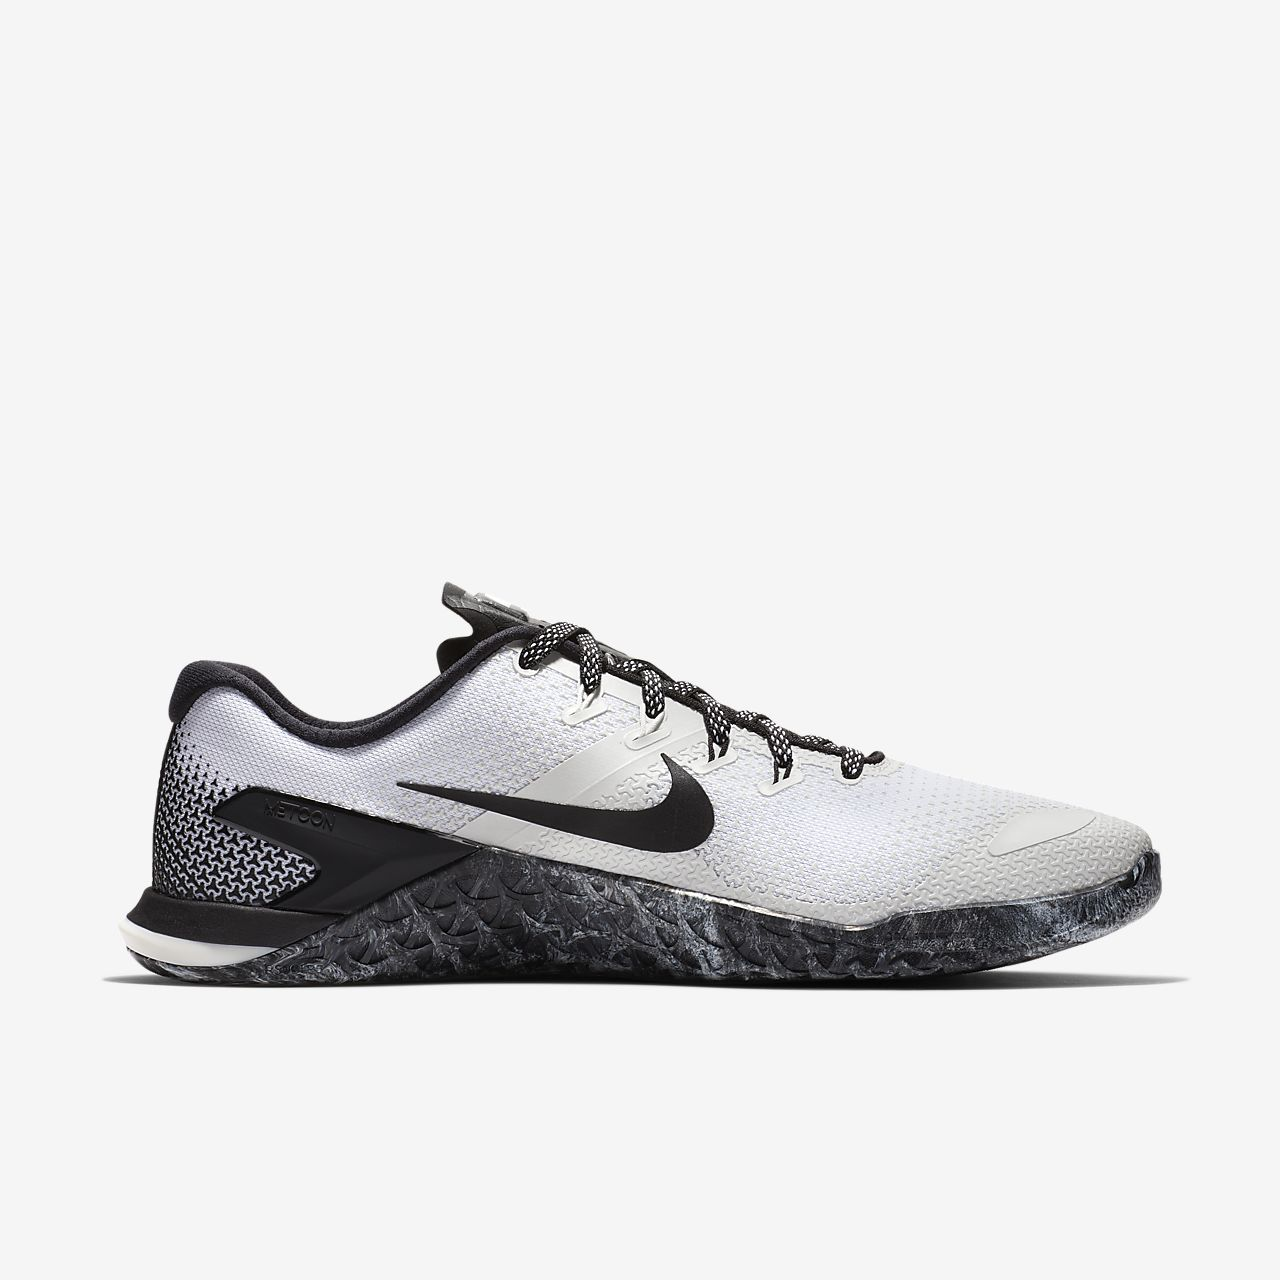 d0a0cbb36d6e3d Nike Metcon 4 Men's Cross Training/Weightlifting Shoe. Nike.com IN